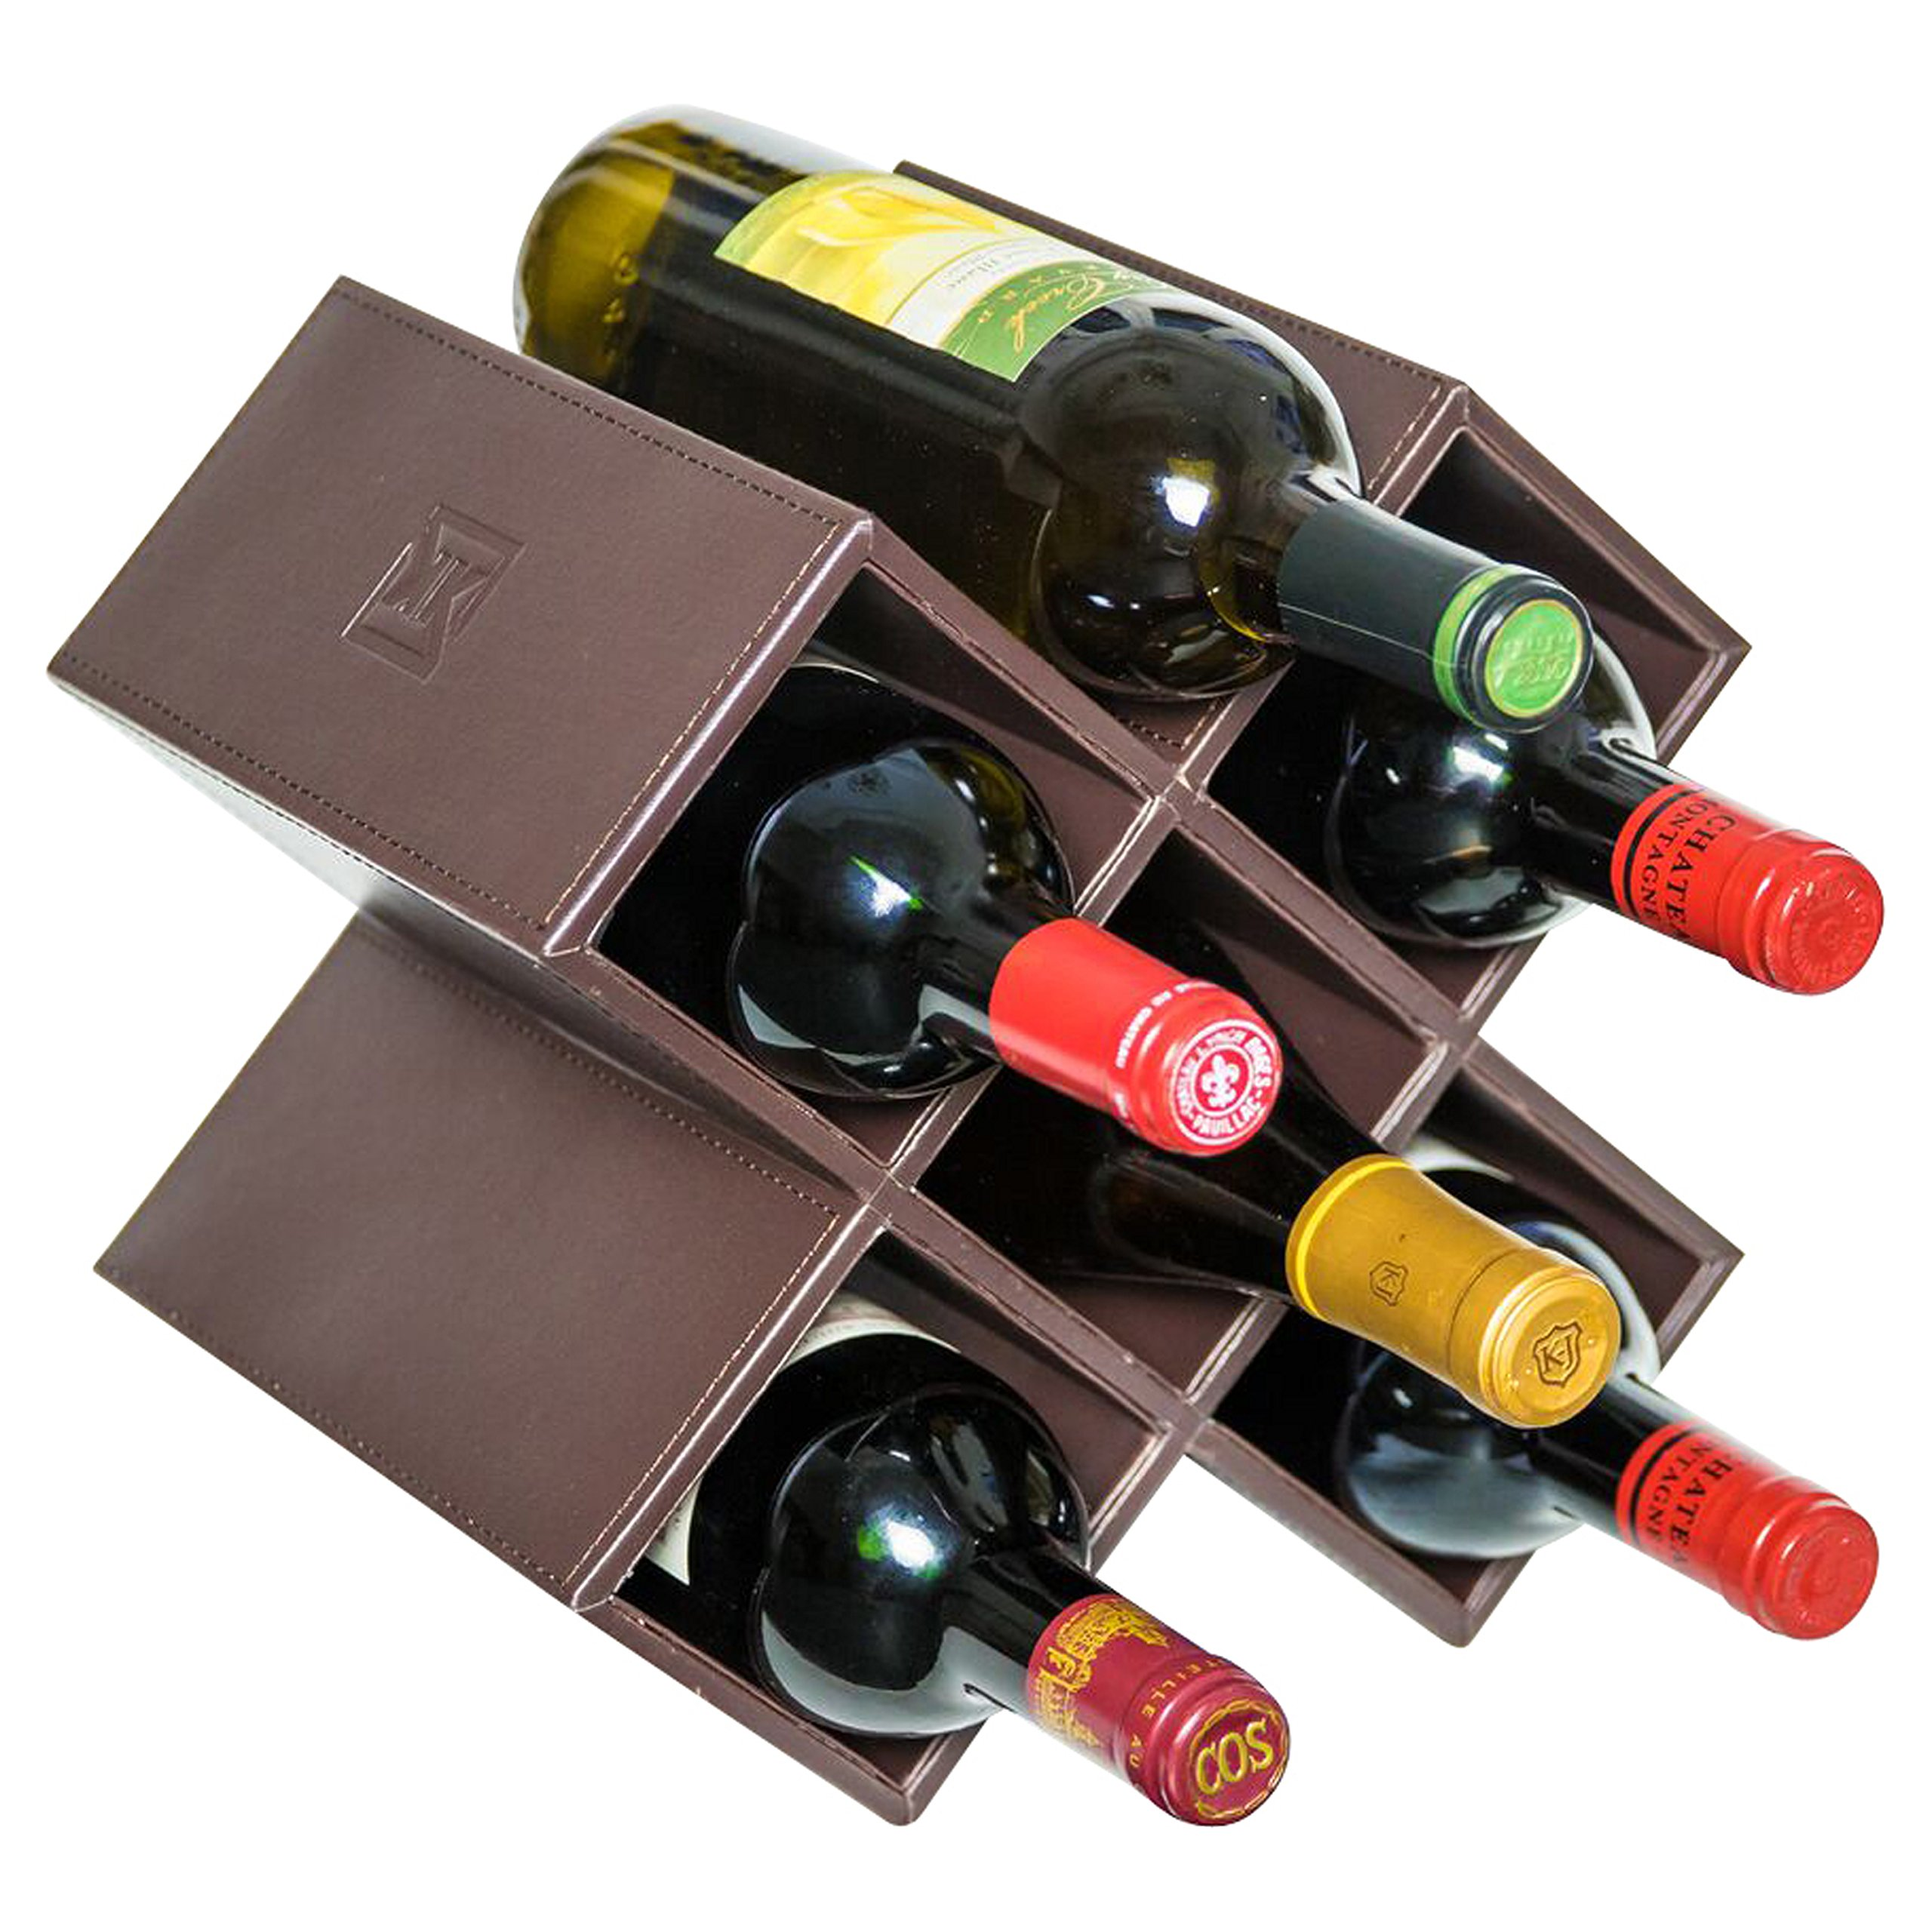 bottle floor glass image with novelty countertops tag for countertop wine trinity articles counter full under oak racks rack